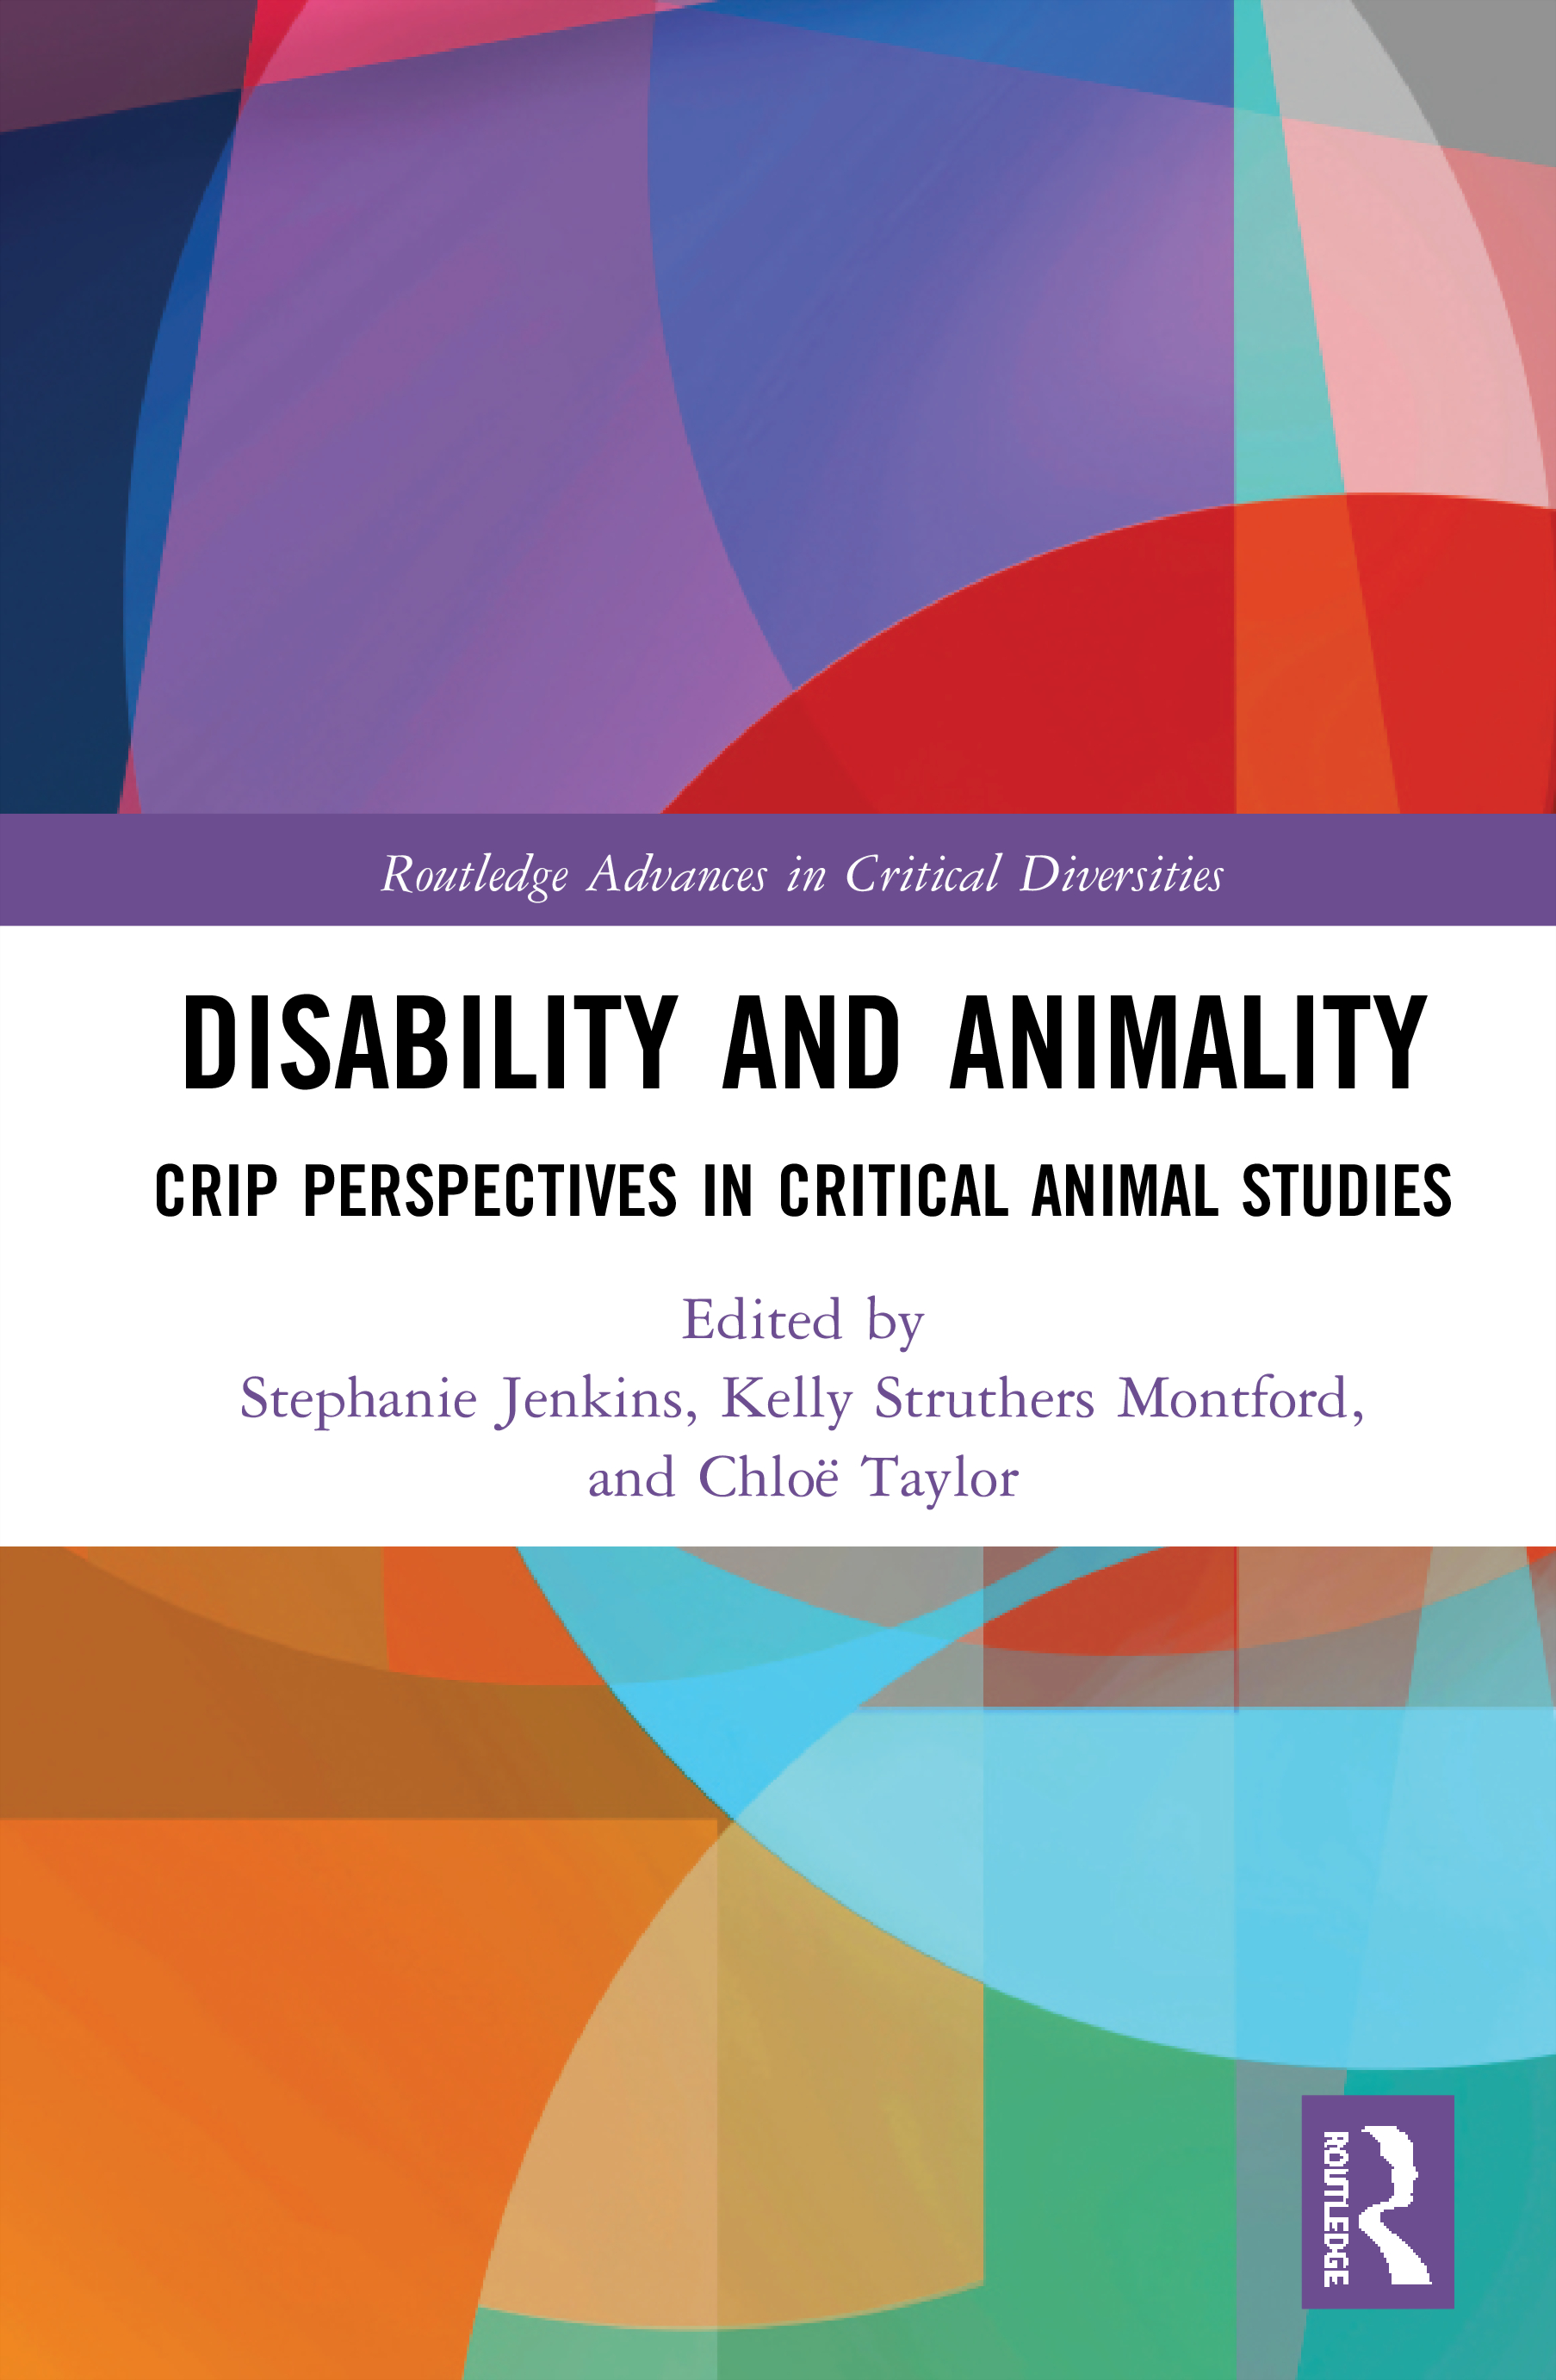 Disability and Animality: Crip Perspectives in Critical Animal Studies book cover